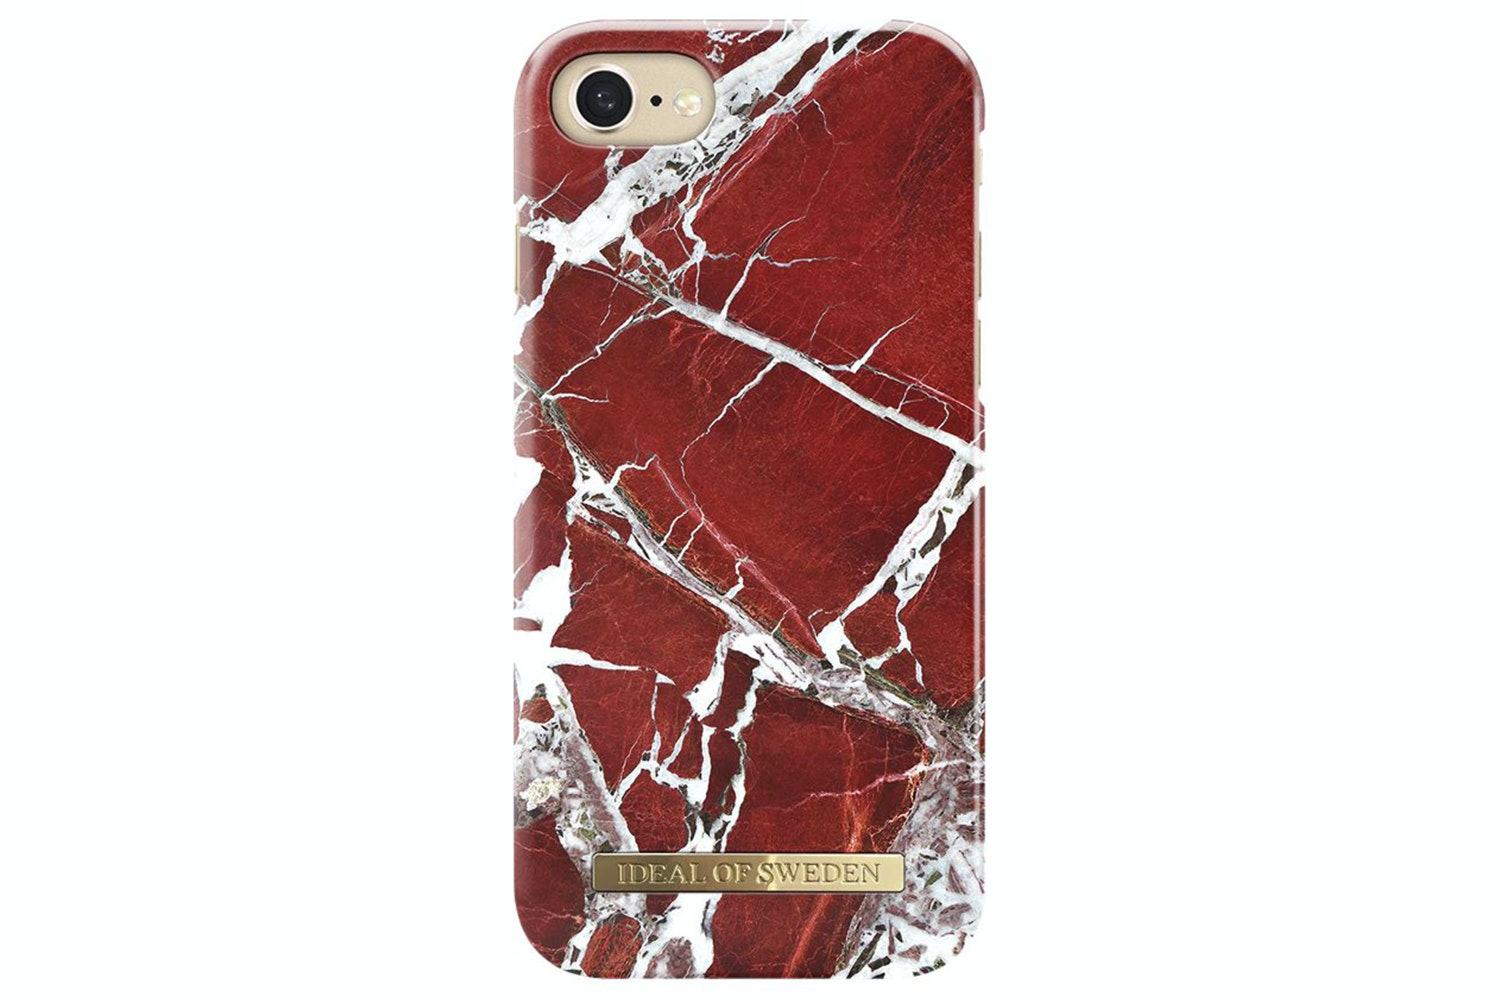 Ideal of Sweden Fashion Case For iPhone 6/7/8 | Scarlet Red Marble